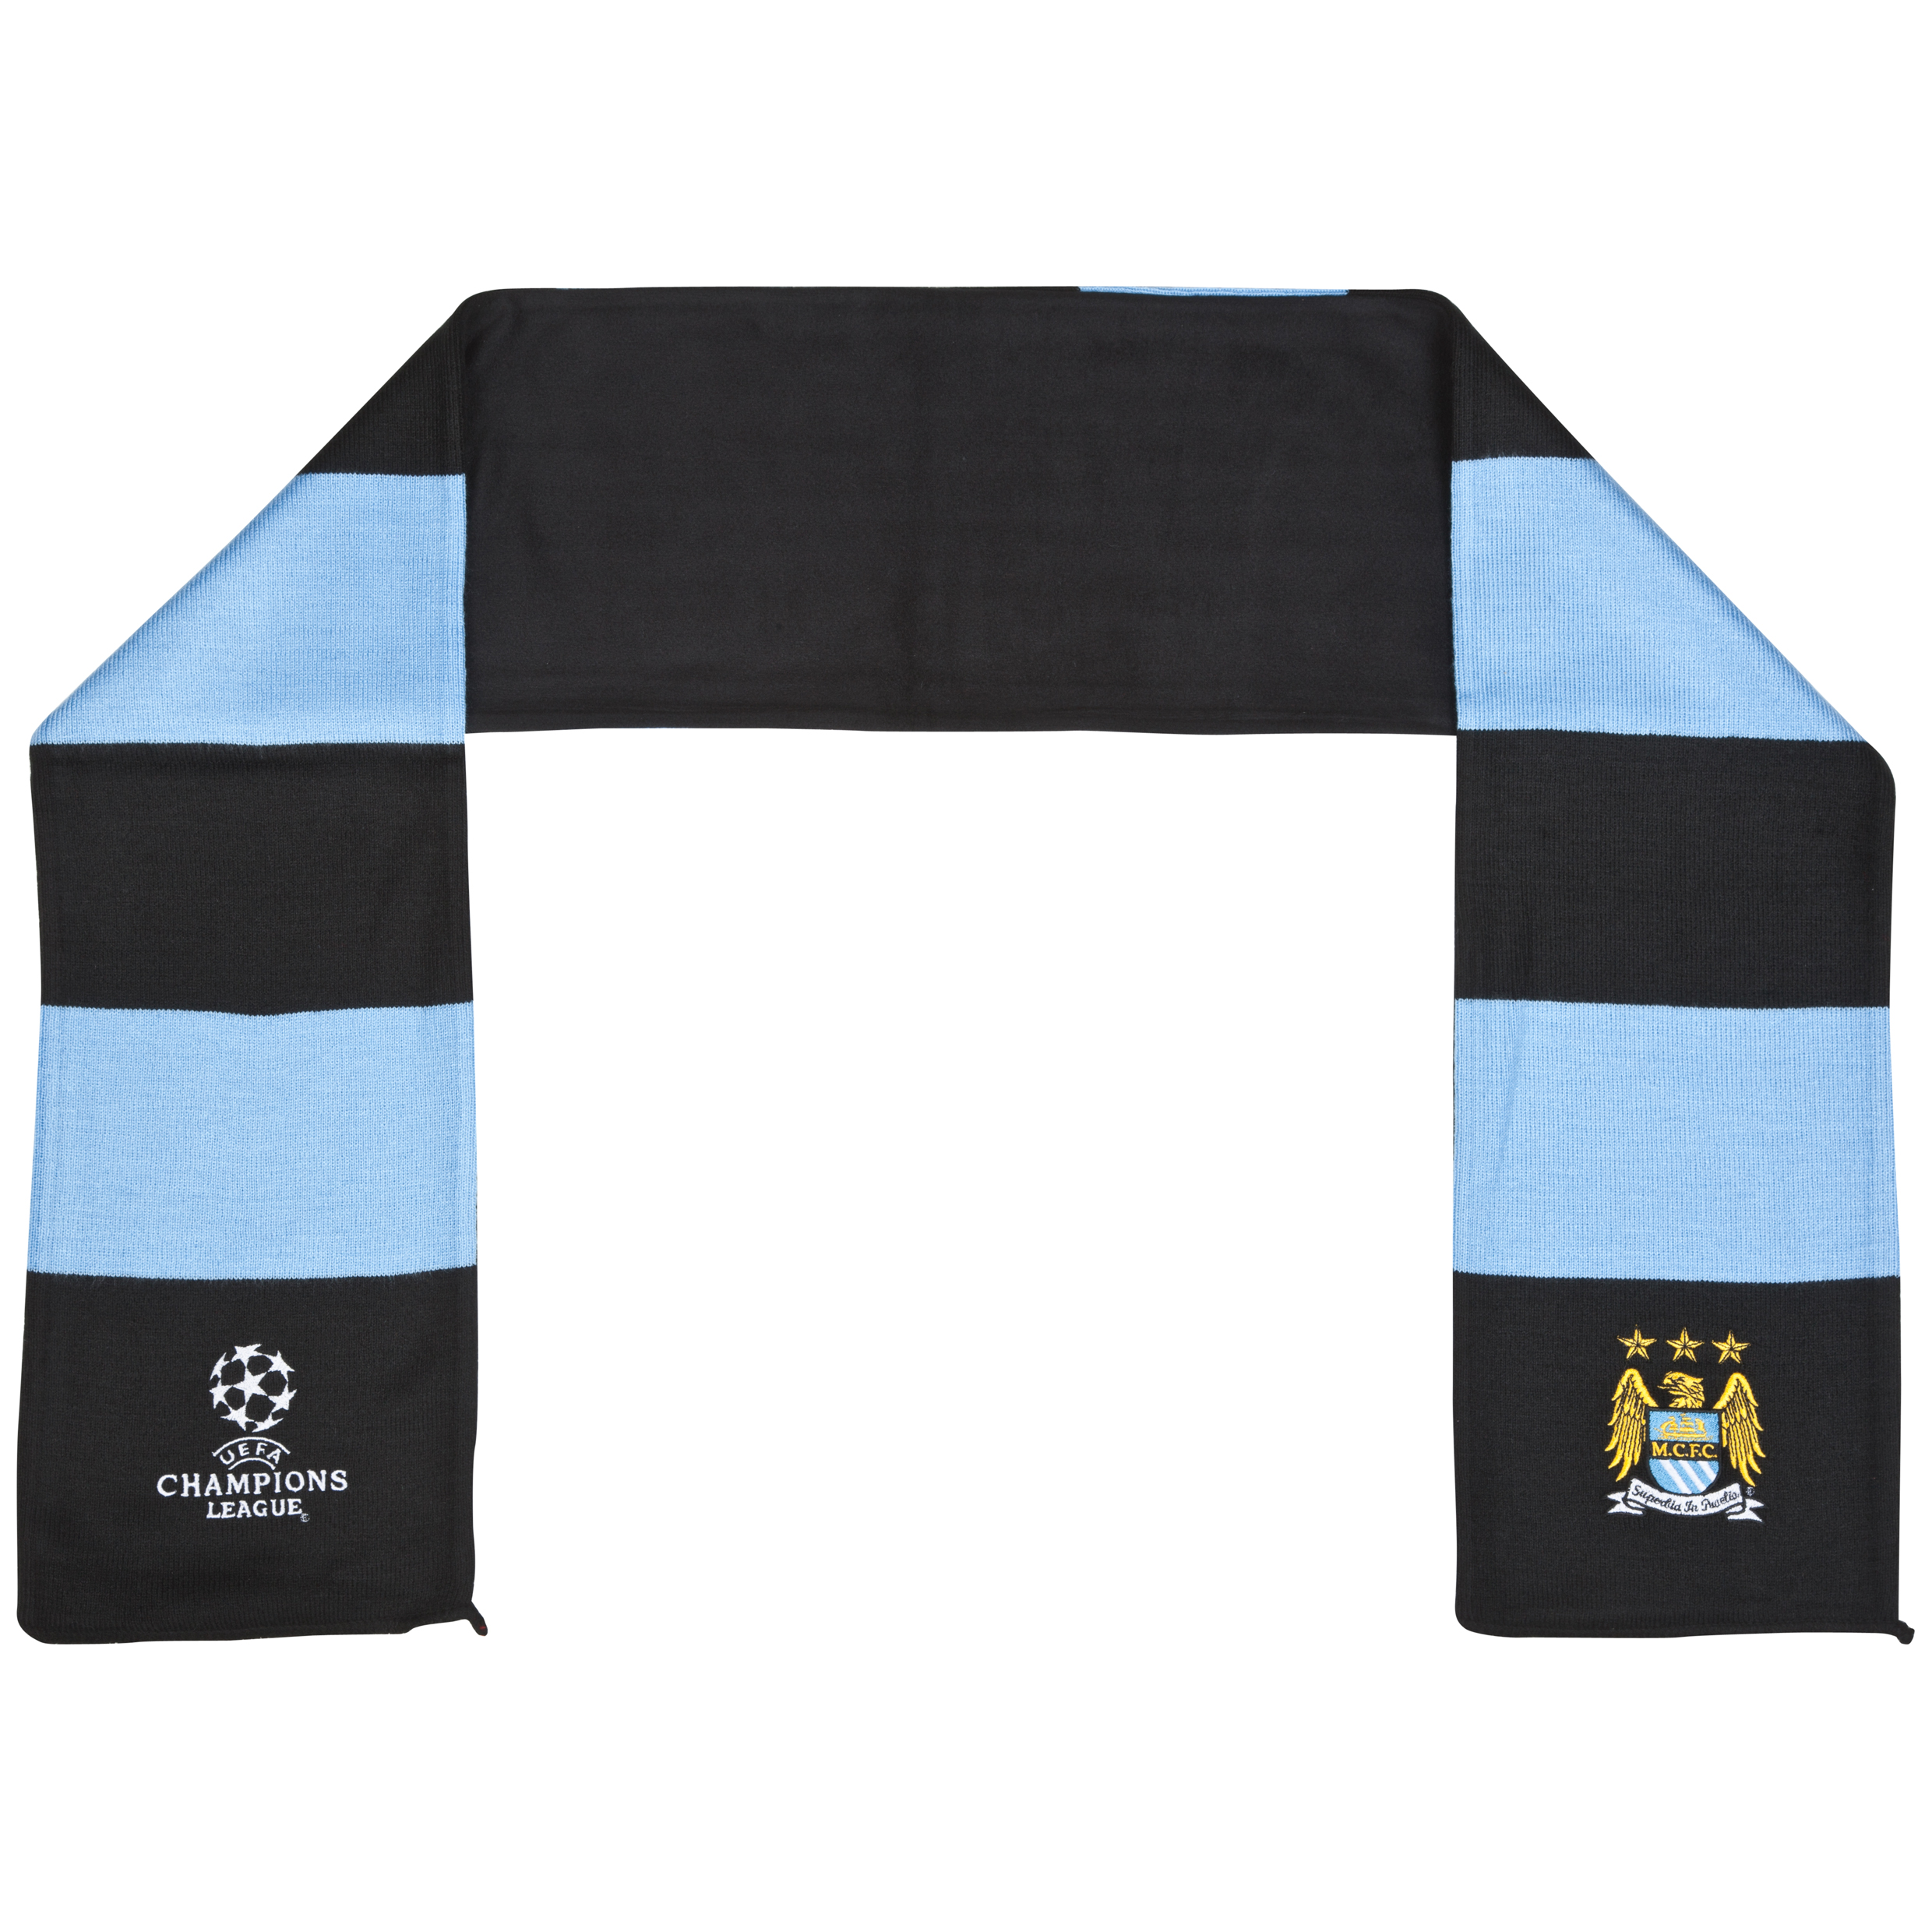 Manchester City Jacquard and Fleece Scarf - Black/Sky